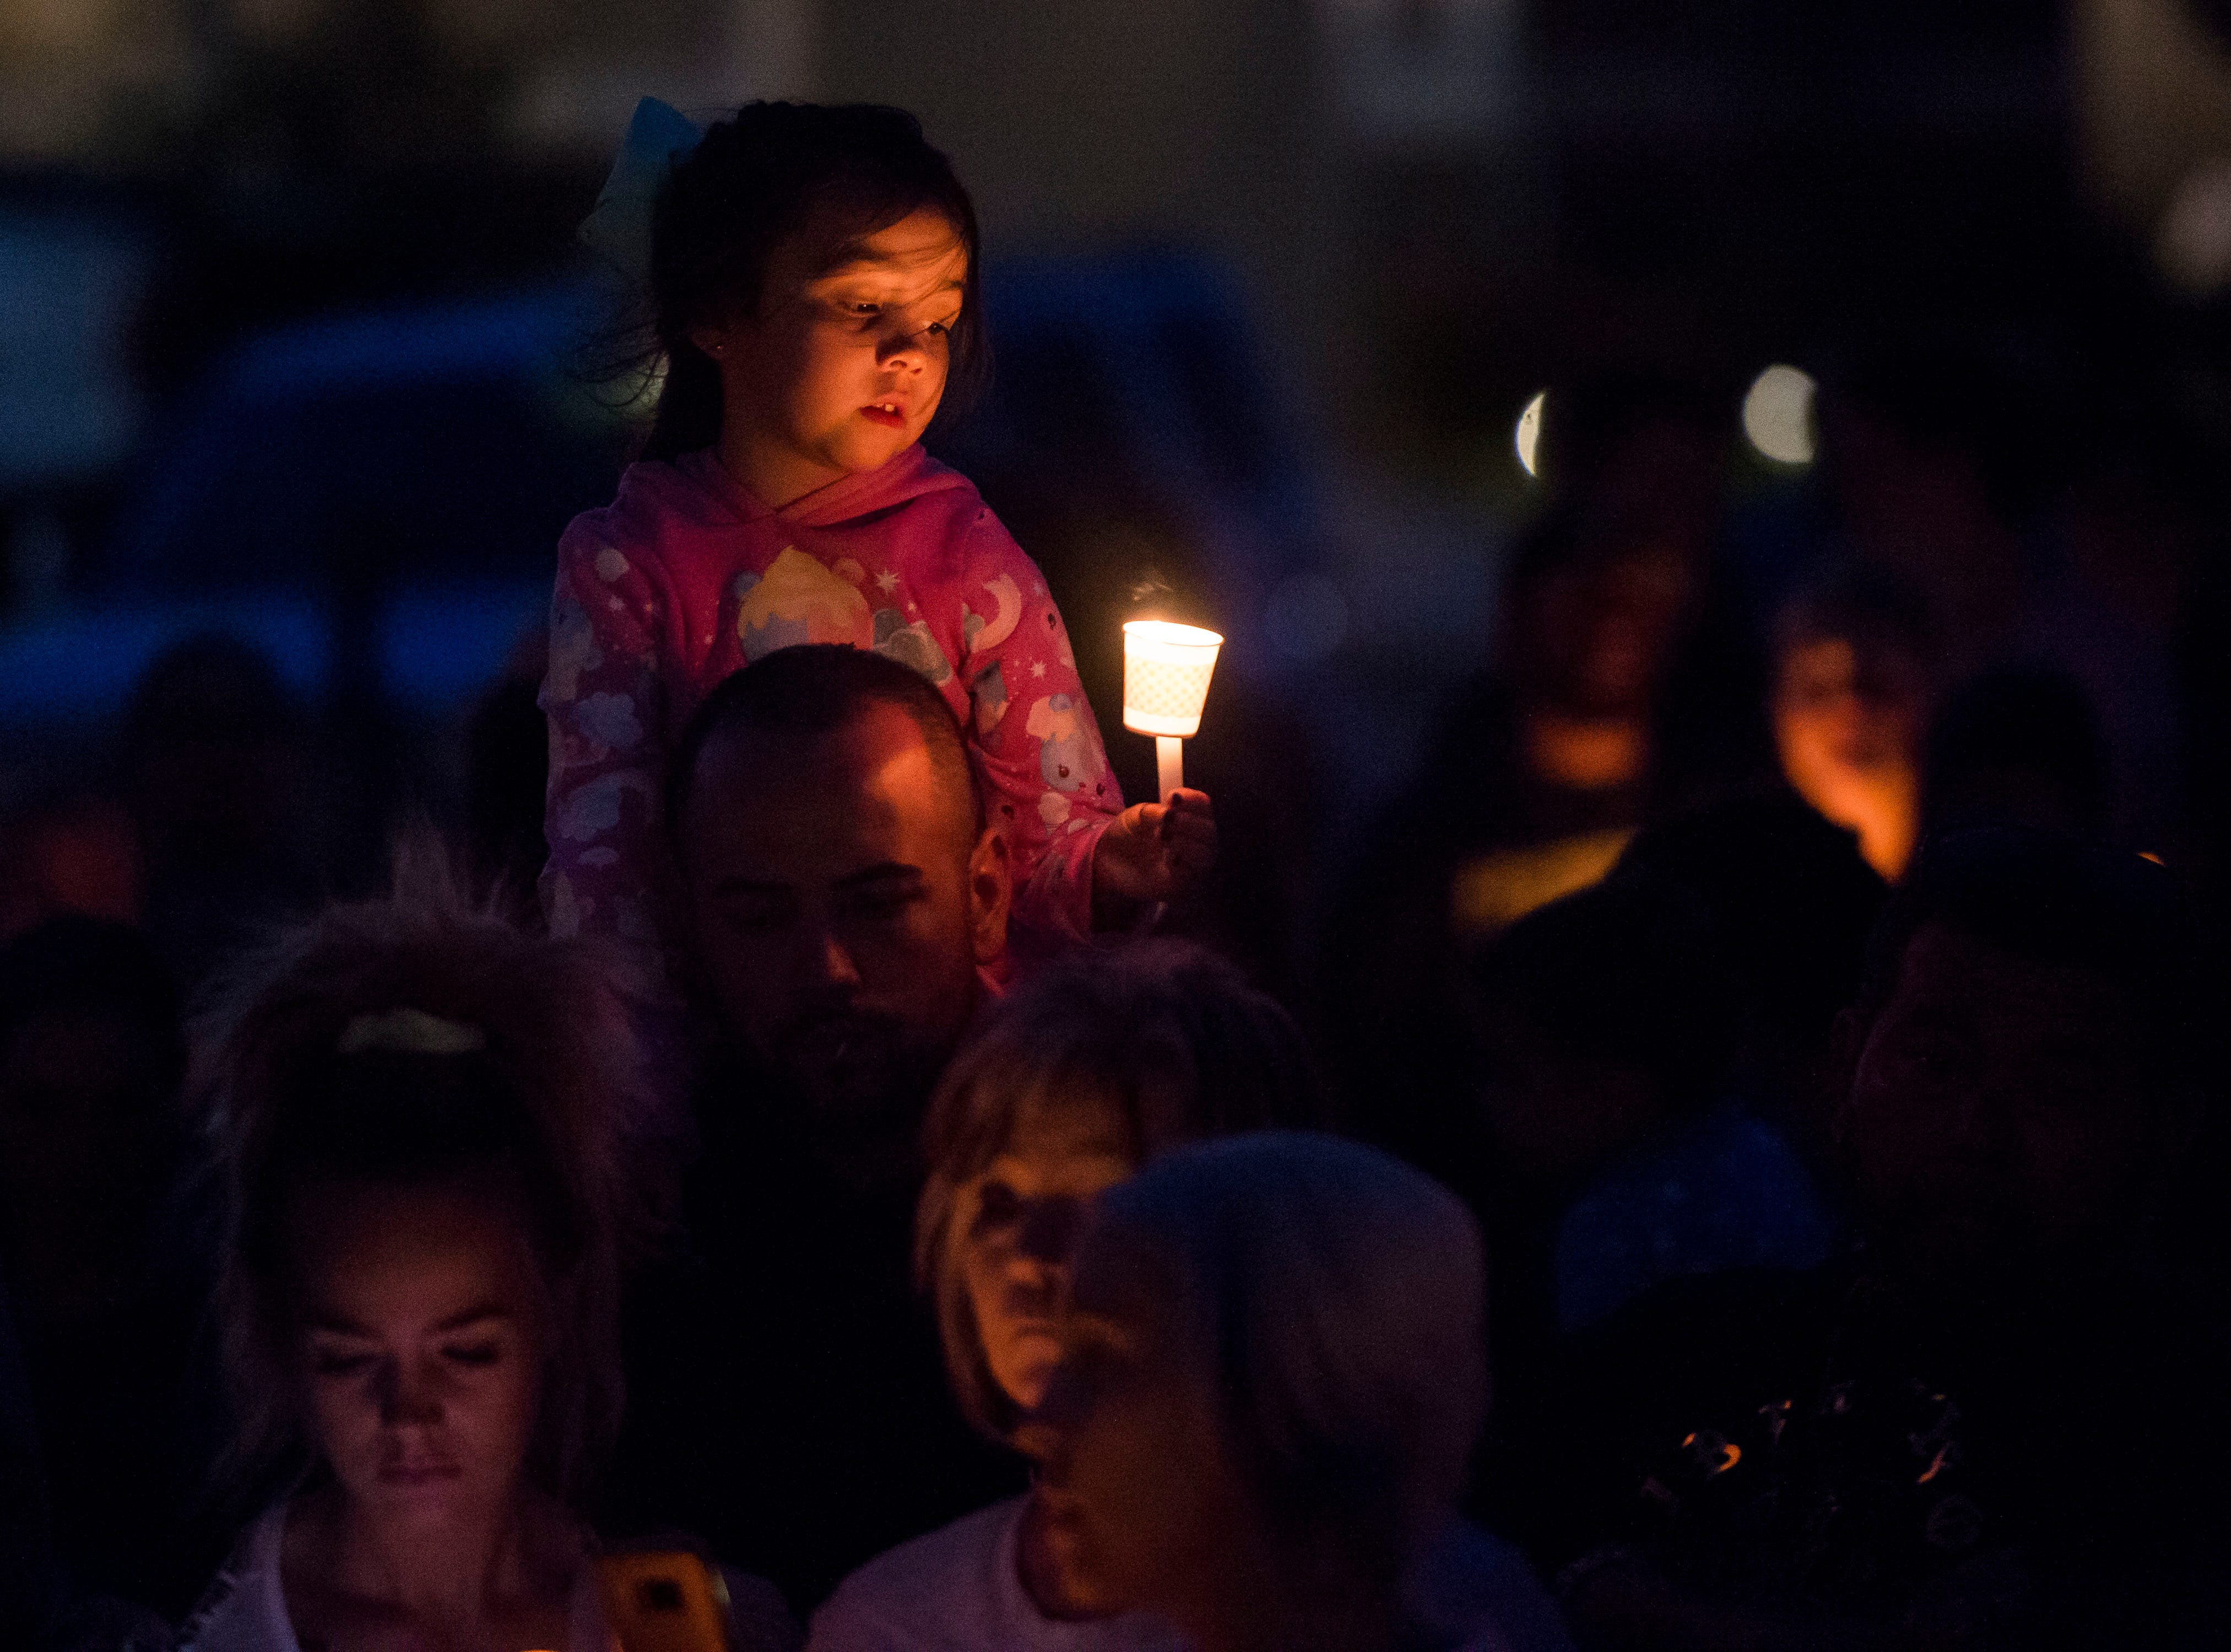 A young girl sits on an adults shoulders during a candle-lit vigil for the slain Shanann Watts and her two daughters, Bella, 4, and Celeste, 3, in front of the Watts' family home on Friday, Aug. 17, 2018, in Frederick, Colo.